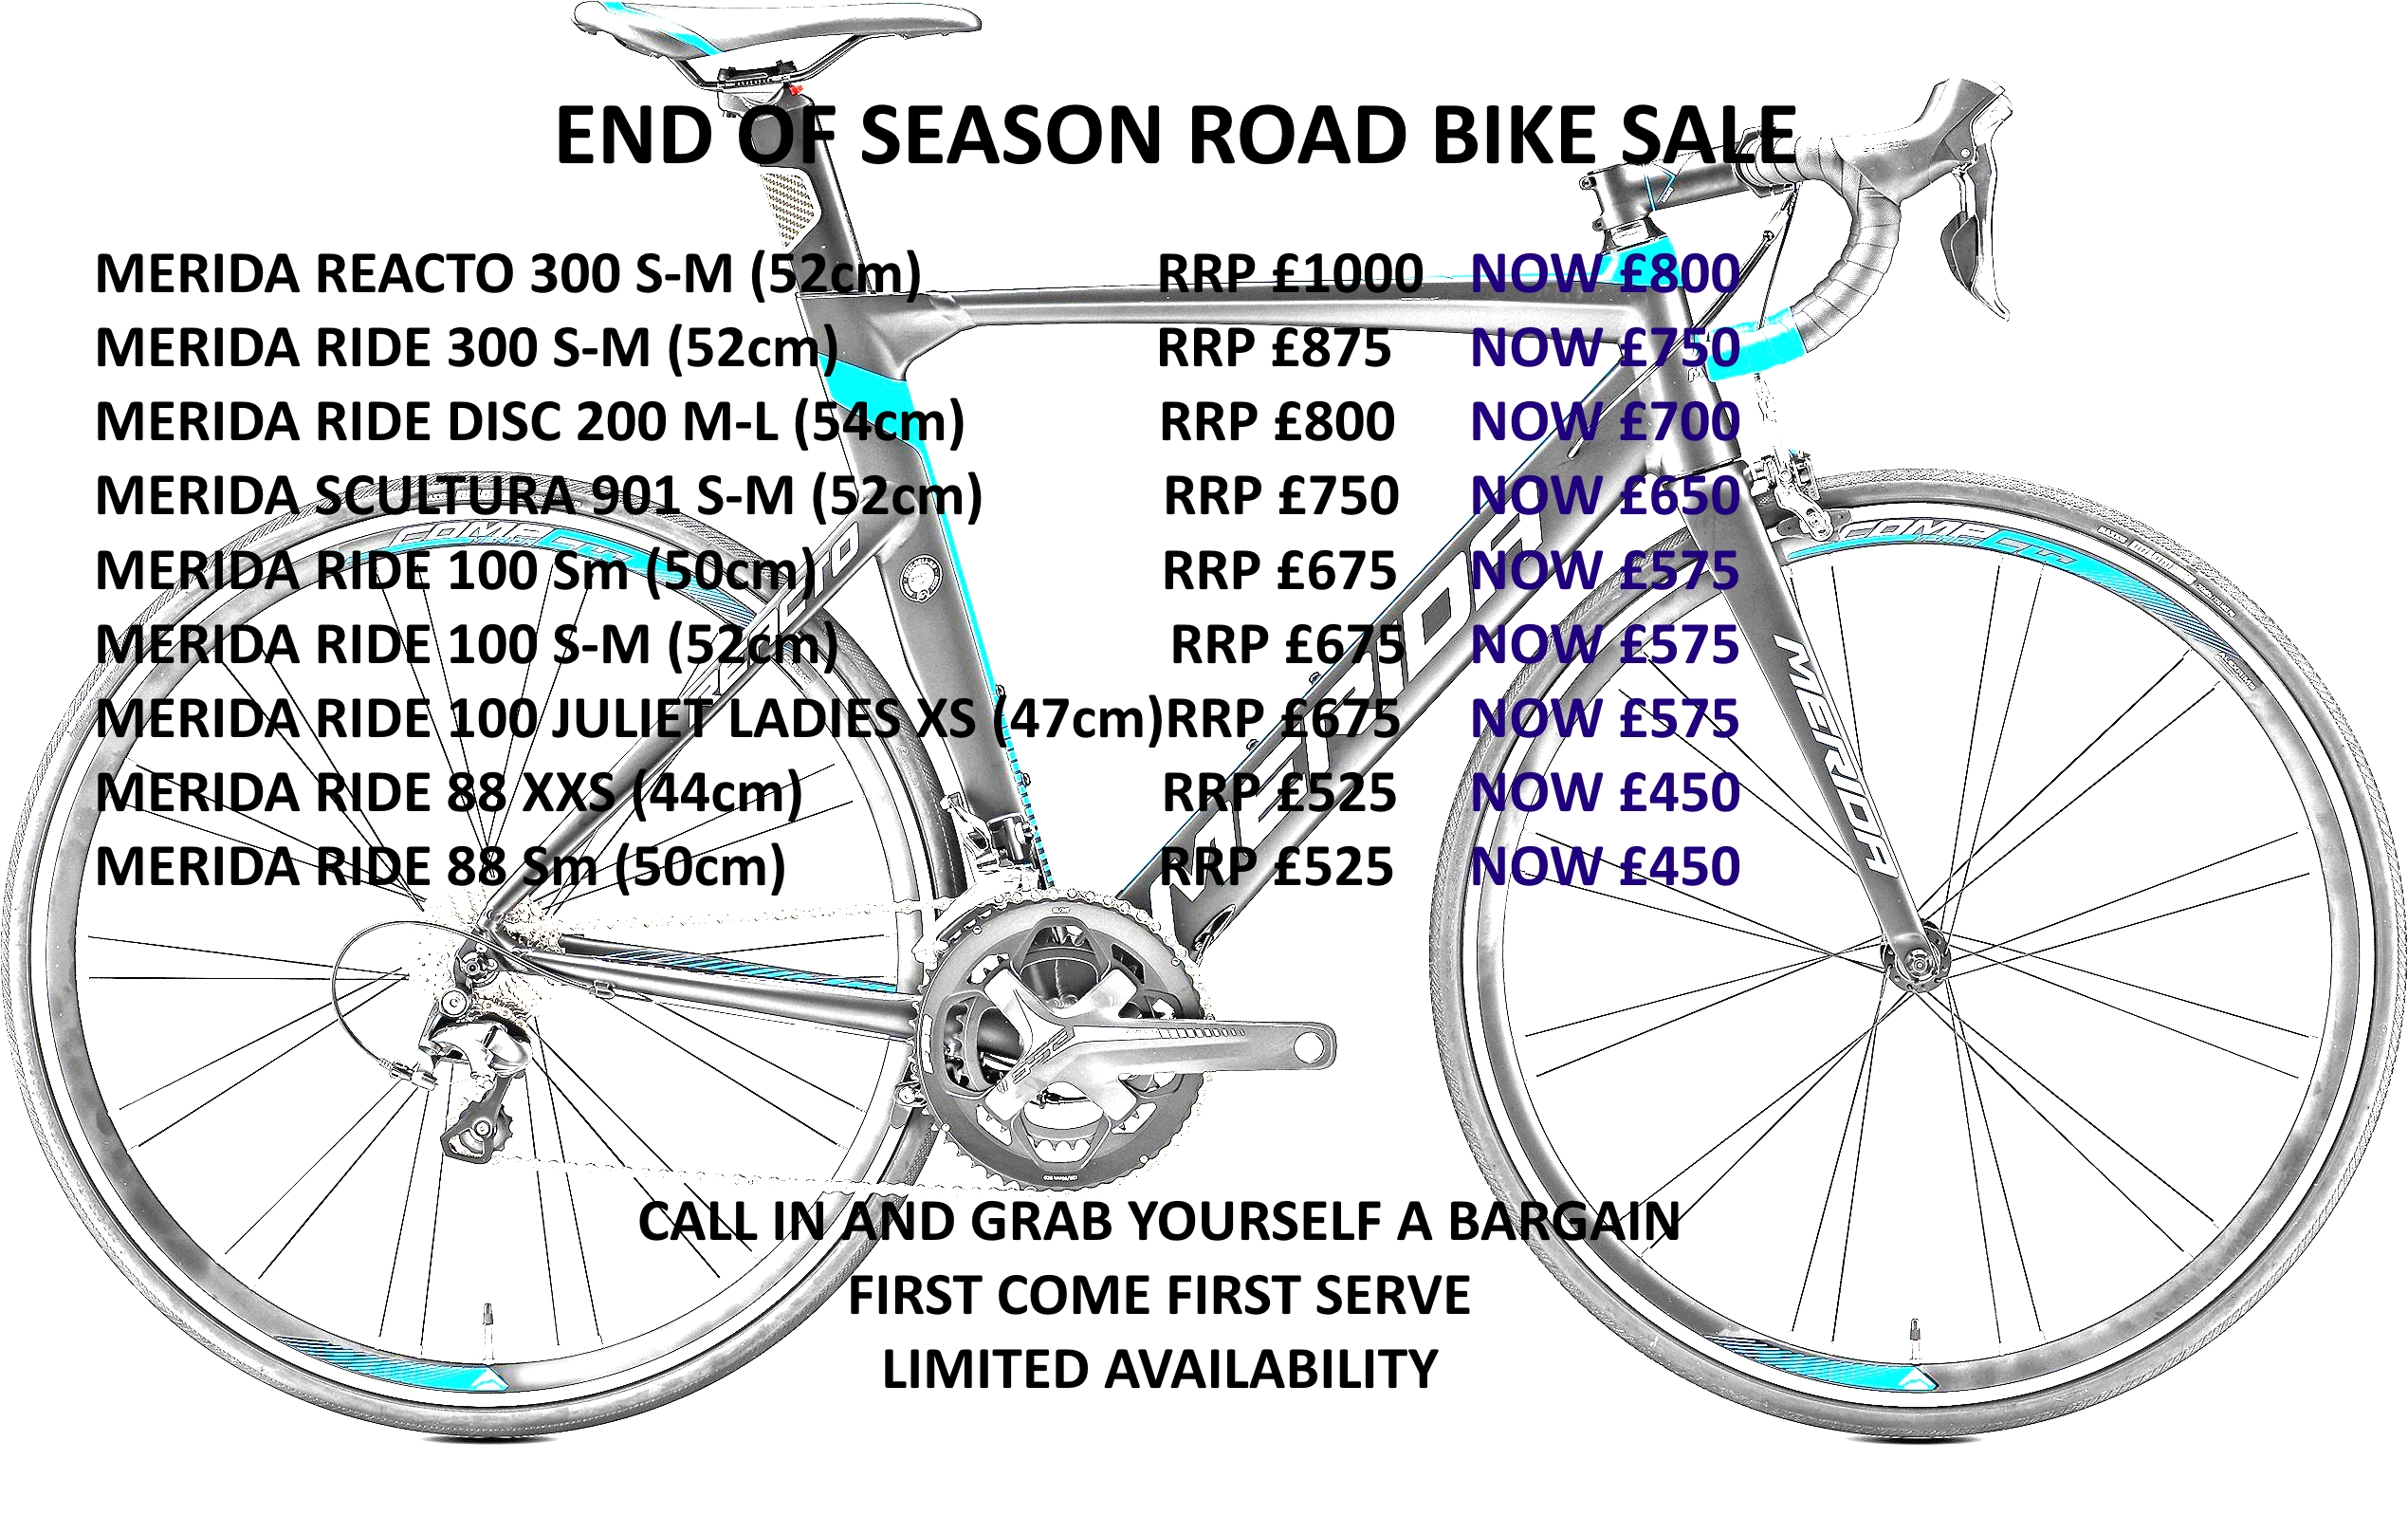 End of season road bike sale